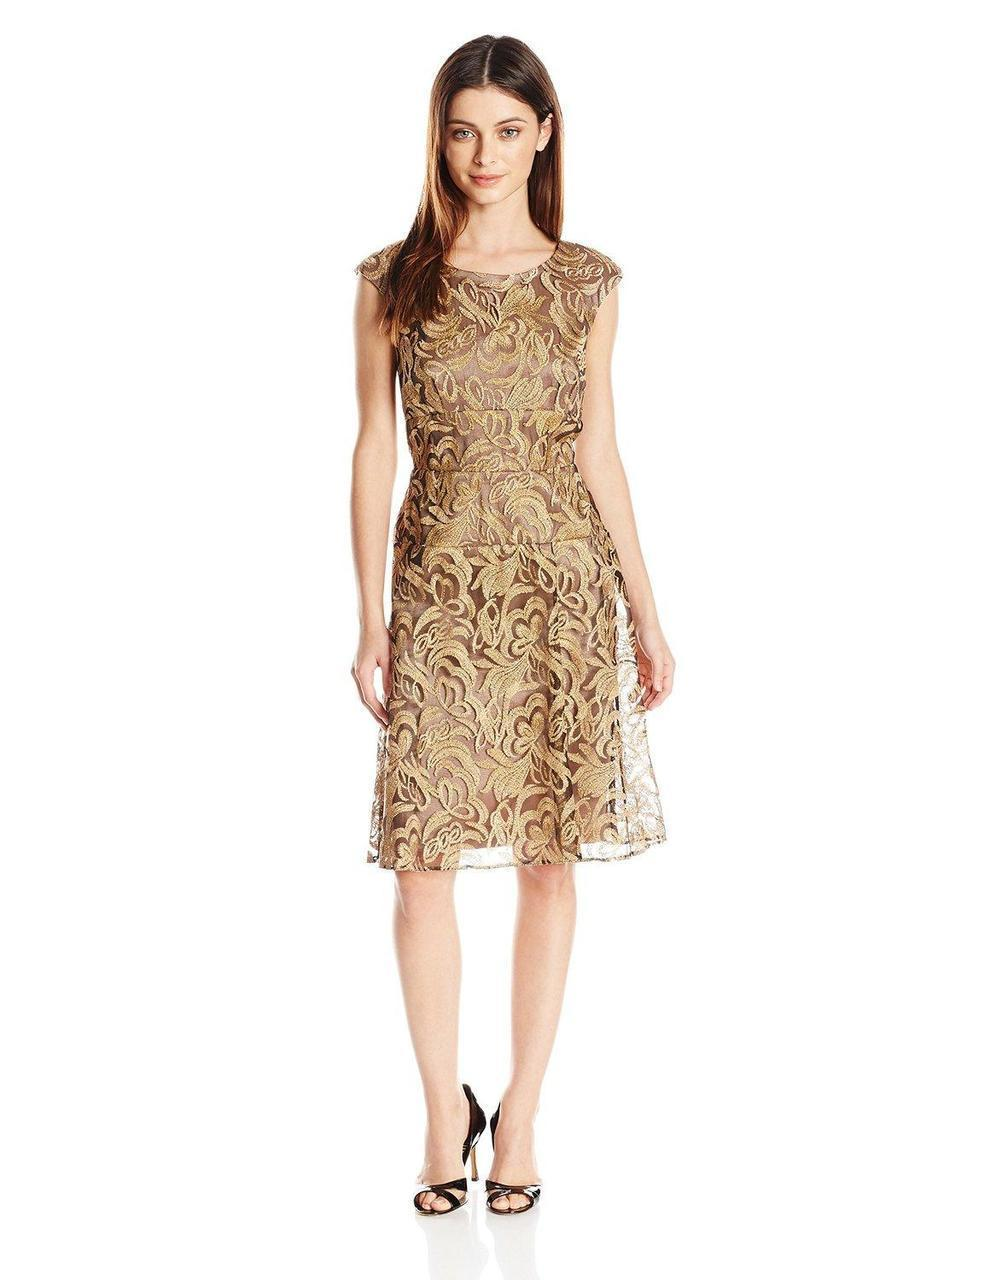 Alex Evenings - Floral Embroidered Bateau A-line Dress in Brown